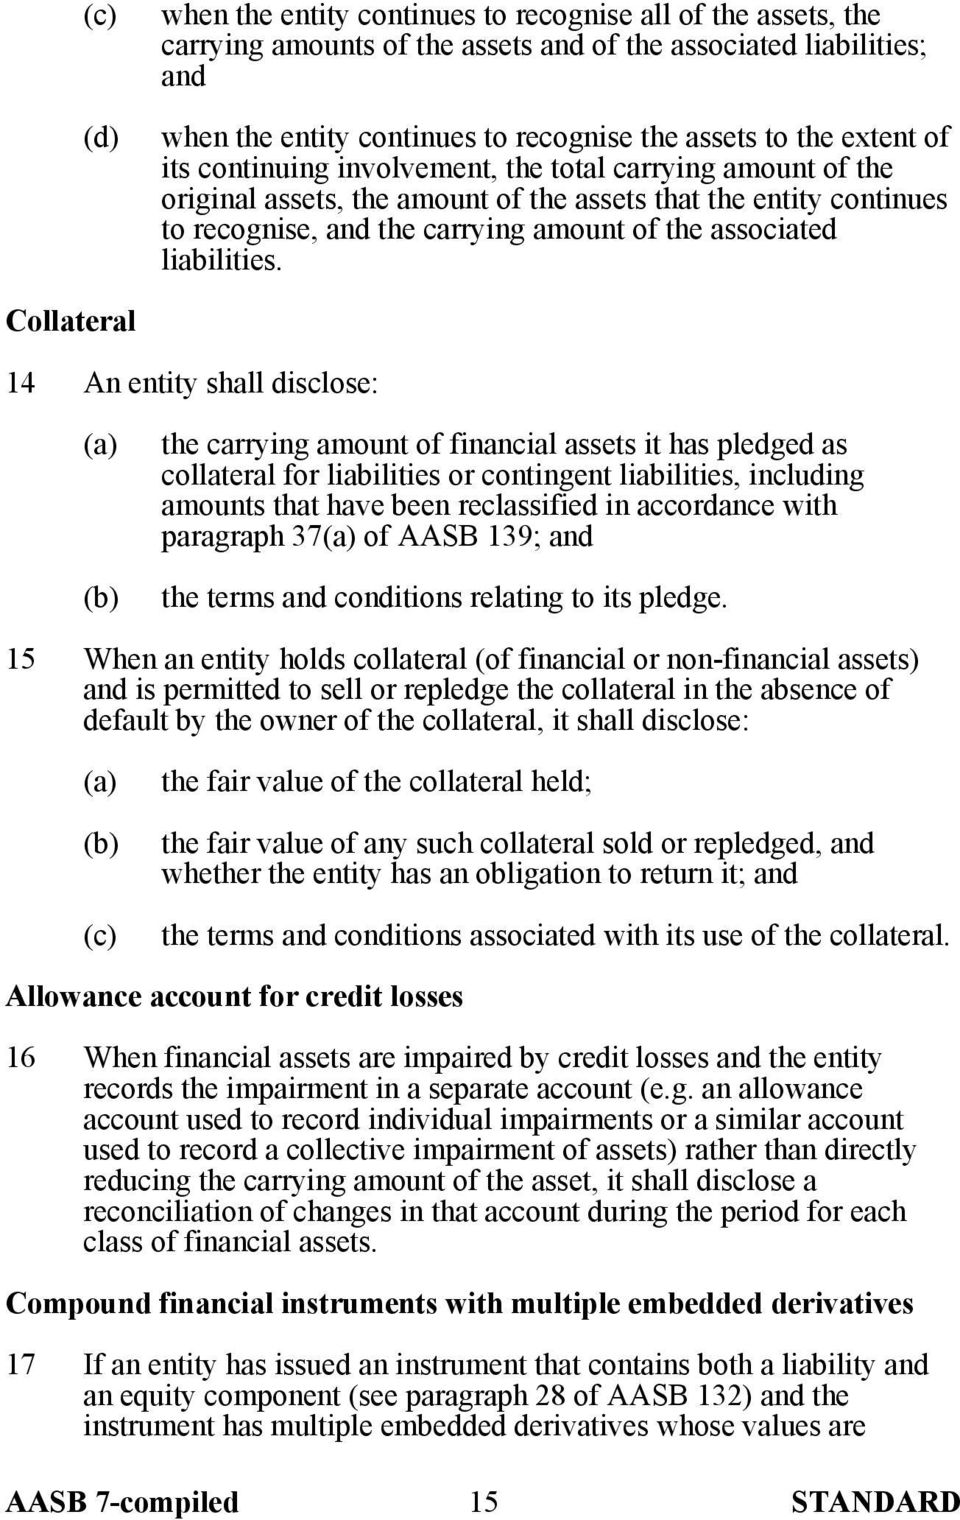 Collateral 14 An entity shall disclose: the carrying amount of financial assets it has pledged as collateral for liabilities or contingent liabilities, including amounts that have been reclassified